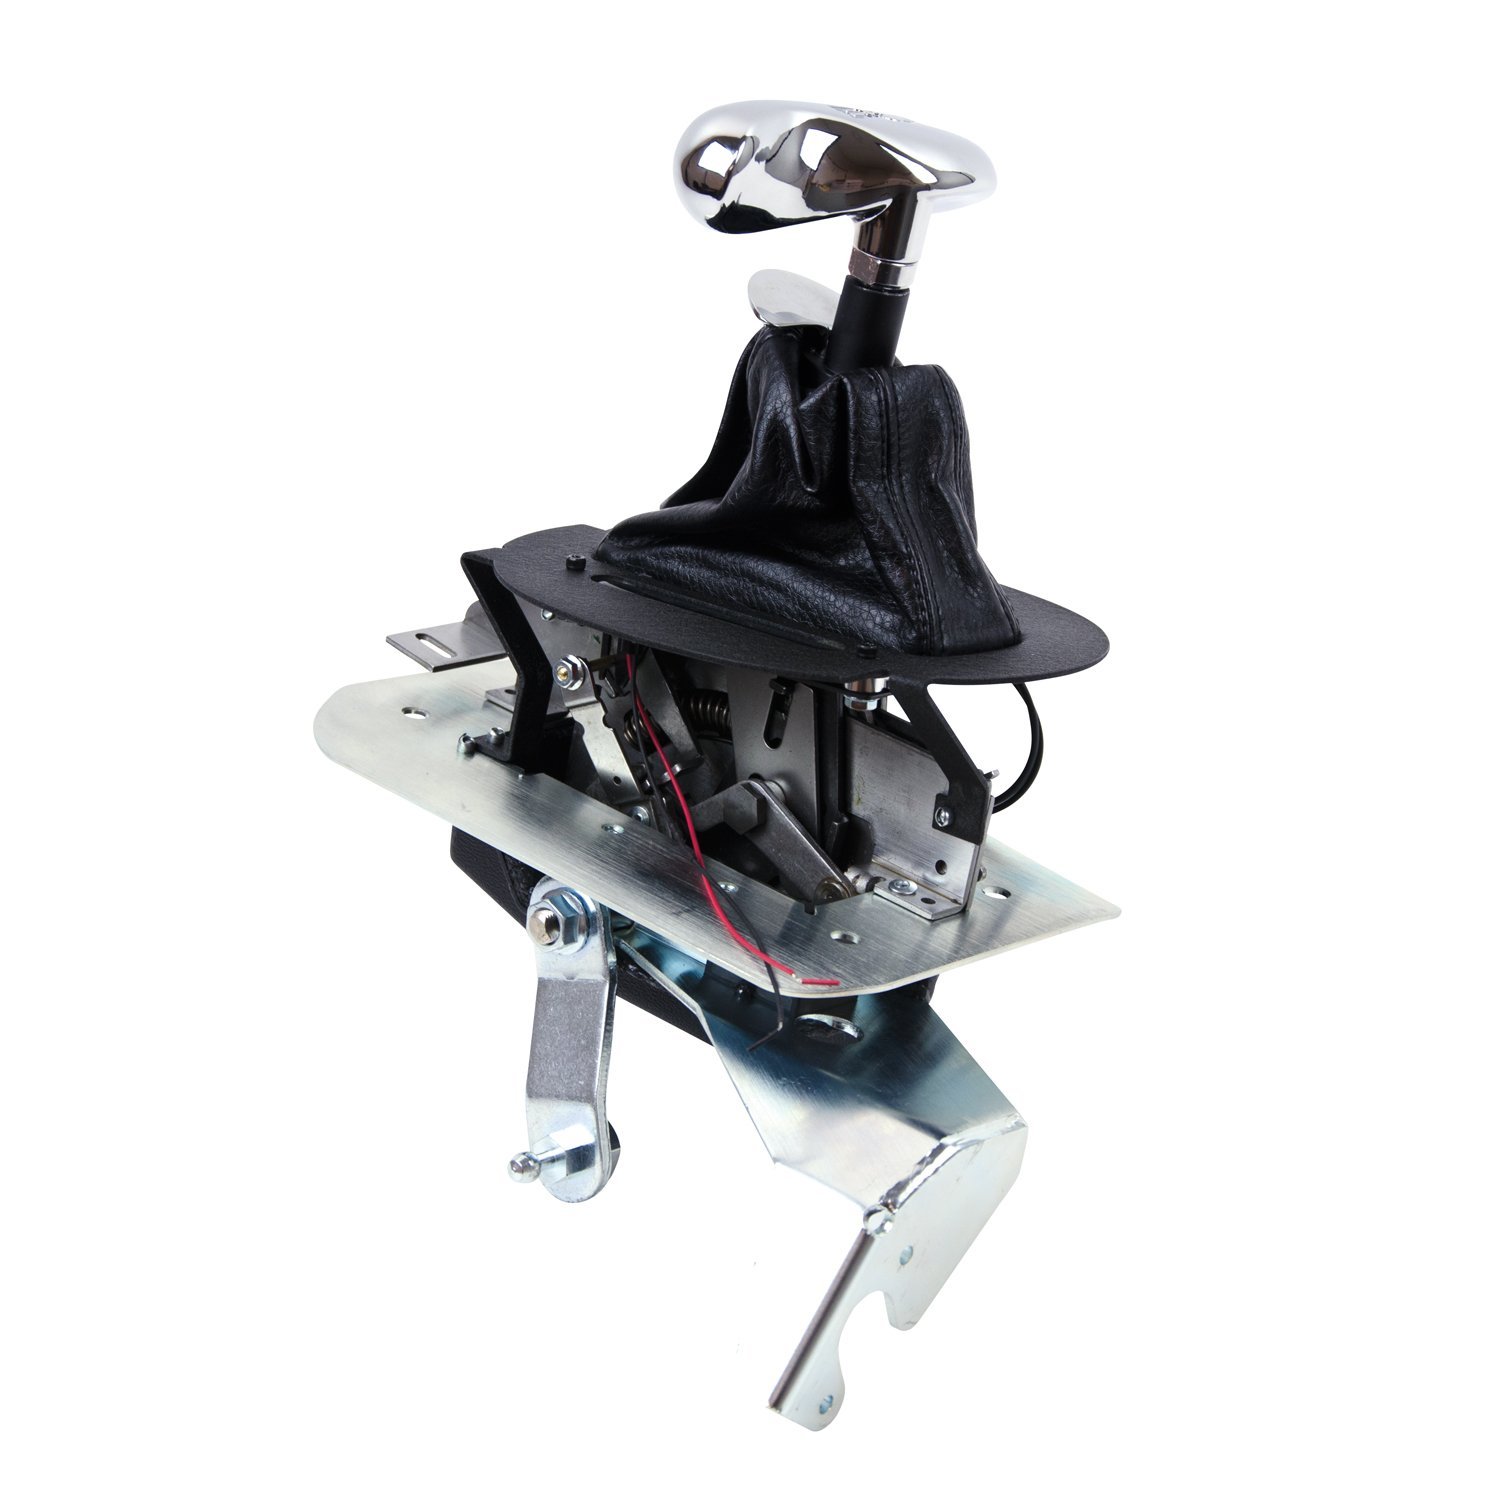 B&M Automatic Ratchet Shifter - Hammer Console